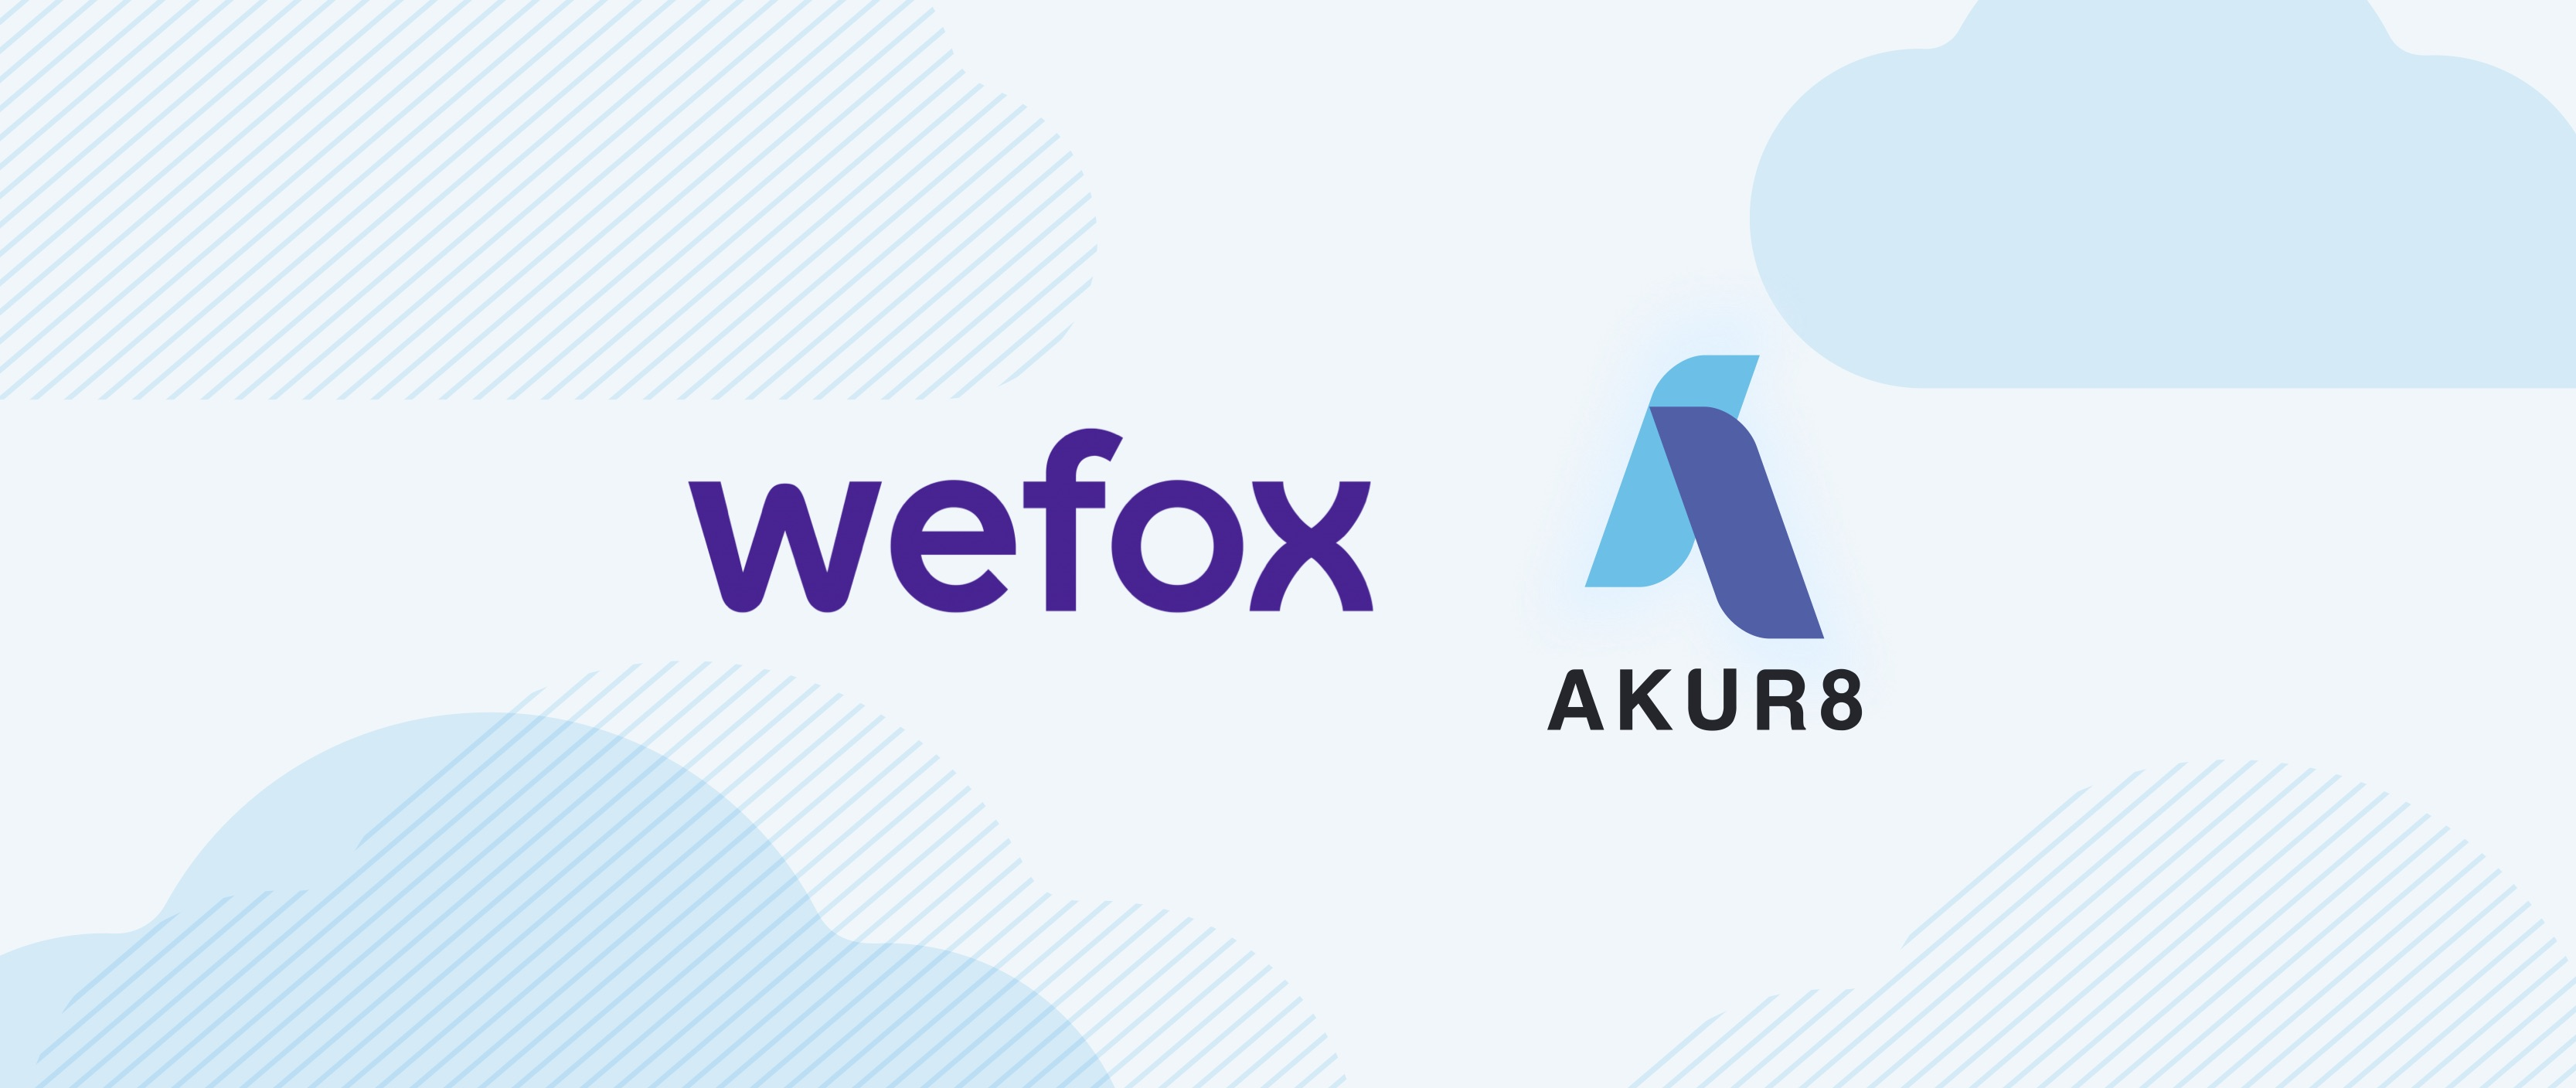 Akur8's logo and wefox's logo facing each others